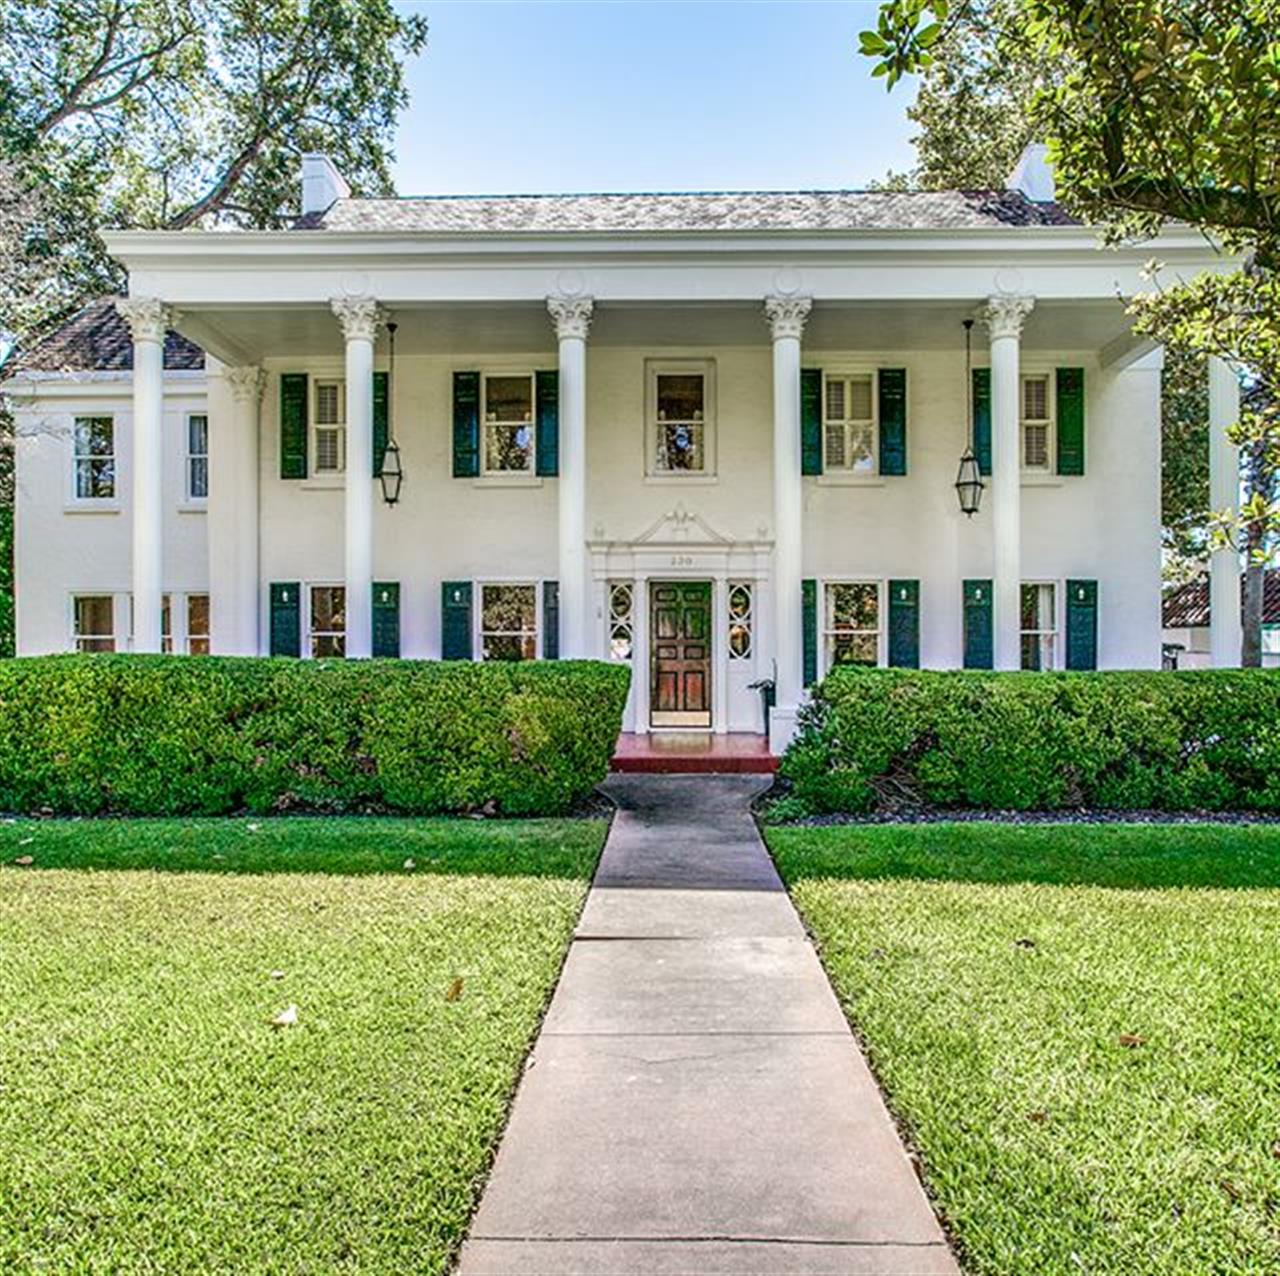 #milliondollarmonday: 230 W. Kings Hwy. in #MonteVista. This refined Colonial-style residence greets its neighbors with a wide veranda supported by an elegant colonnade facade.